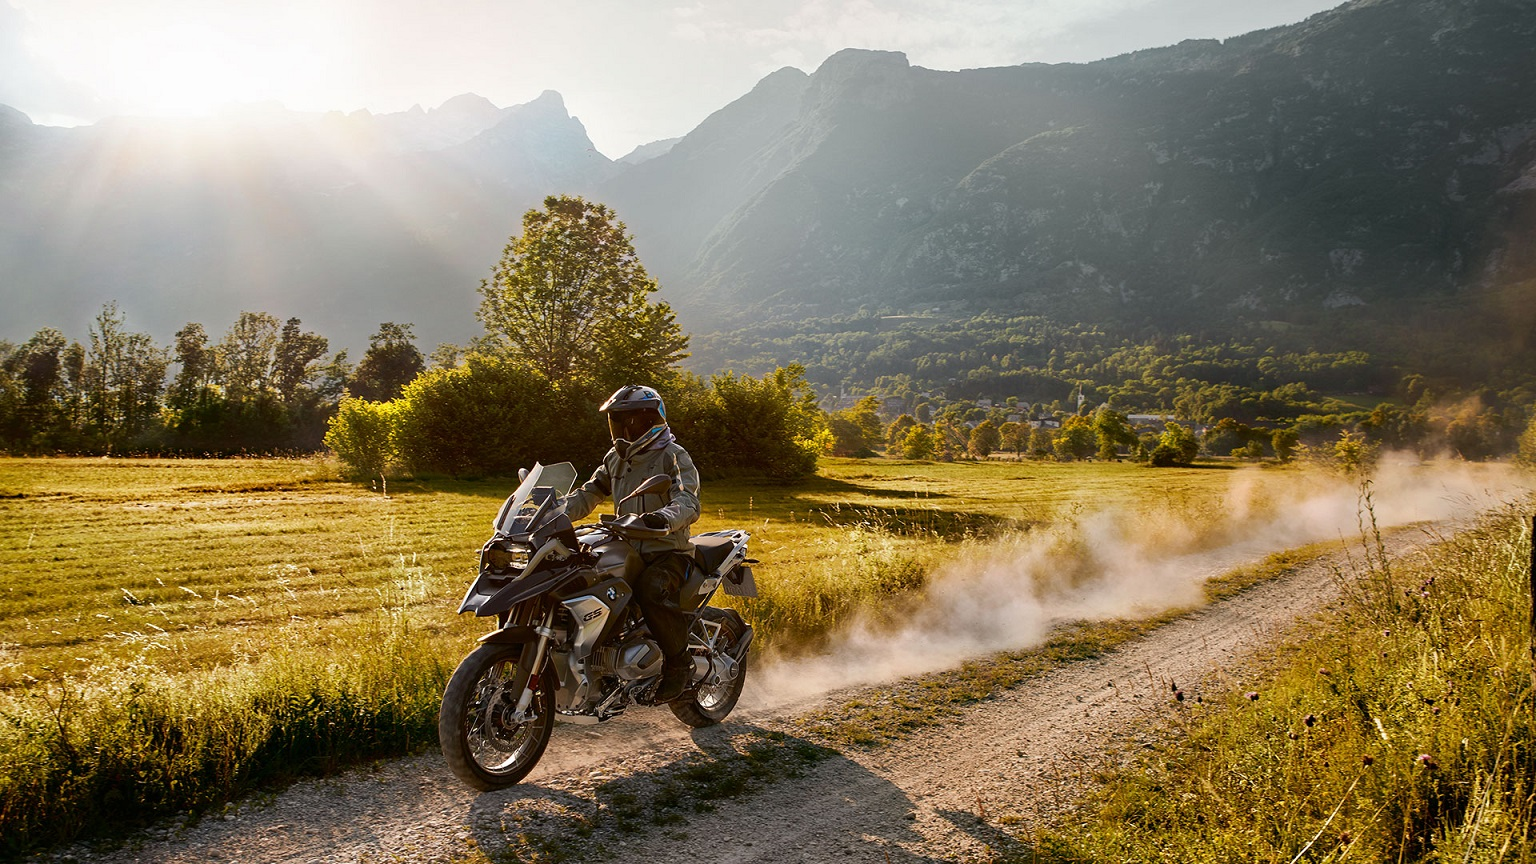 2020 BMW R 1250 GS Exterior Side View Dirt Road